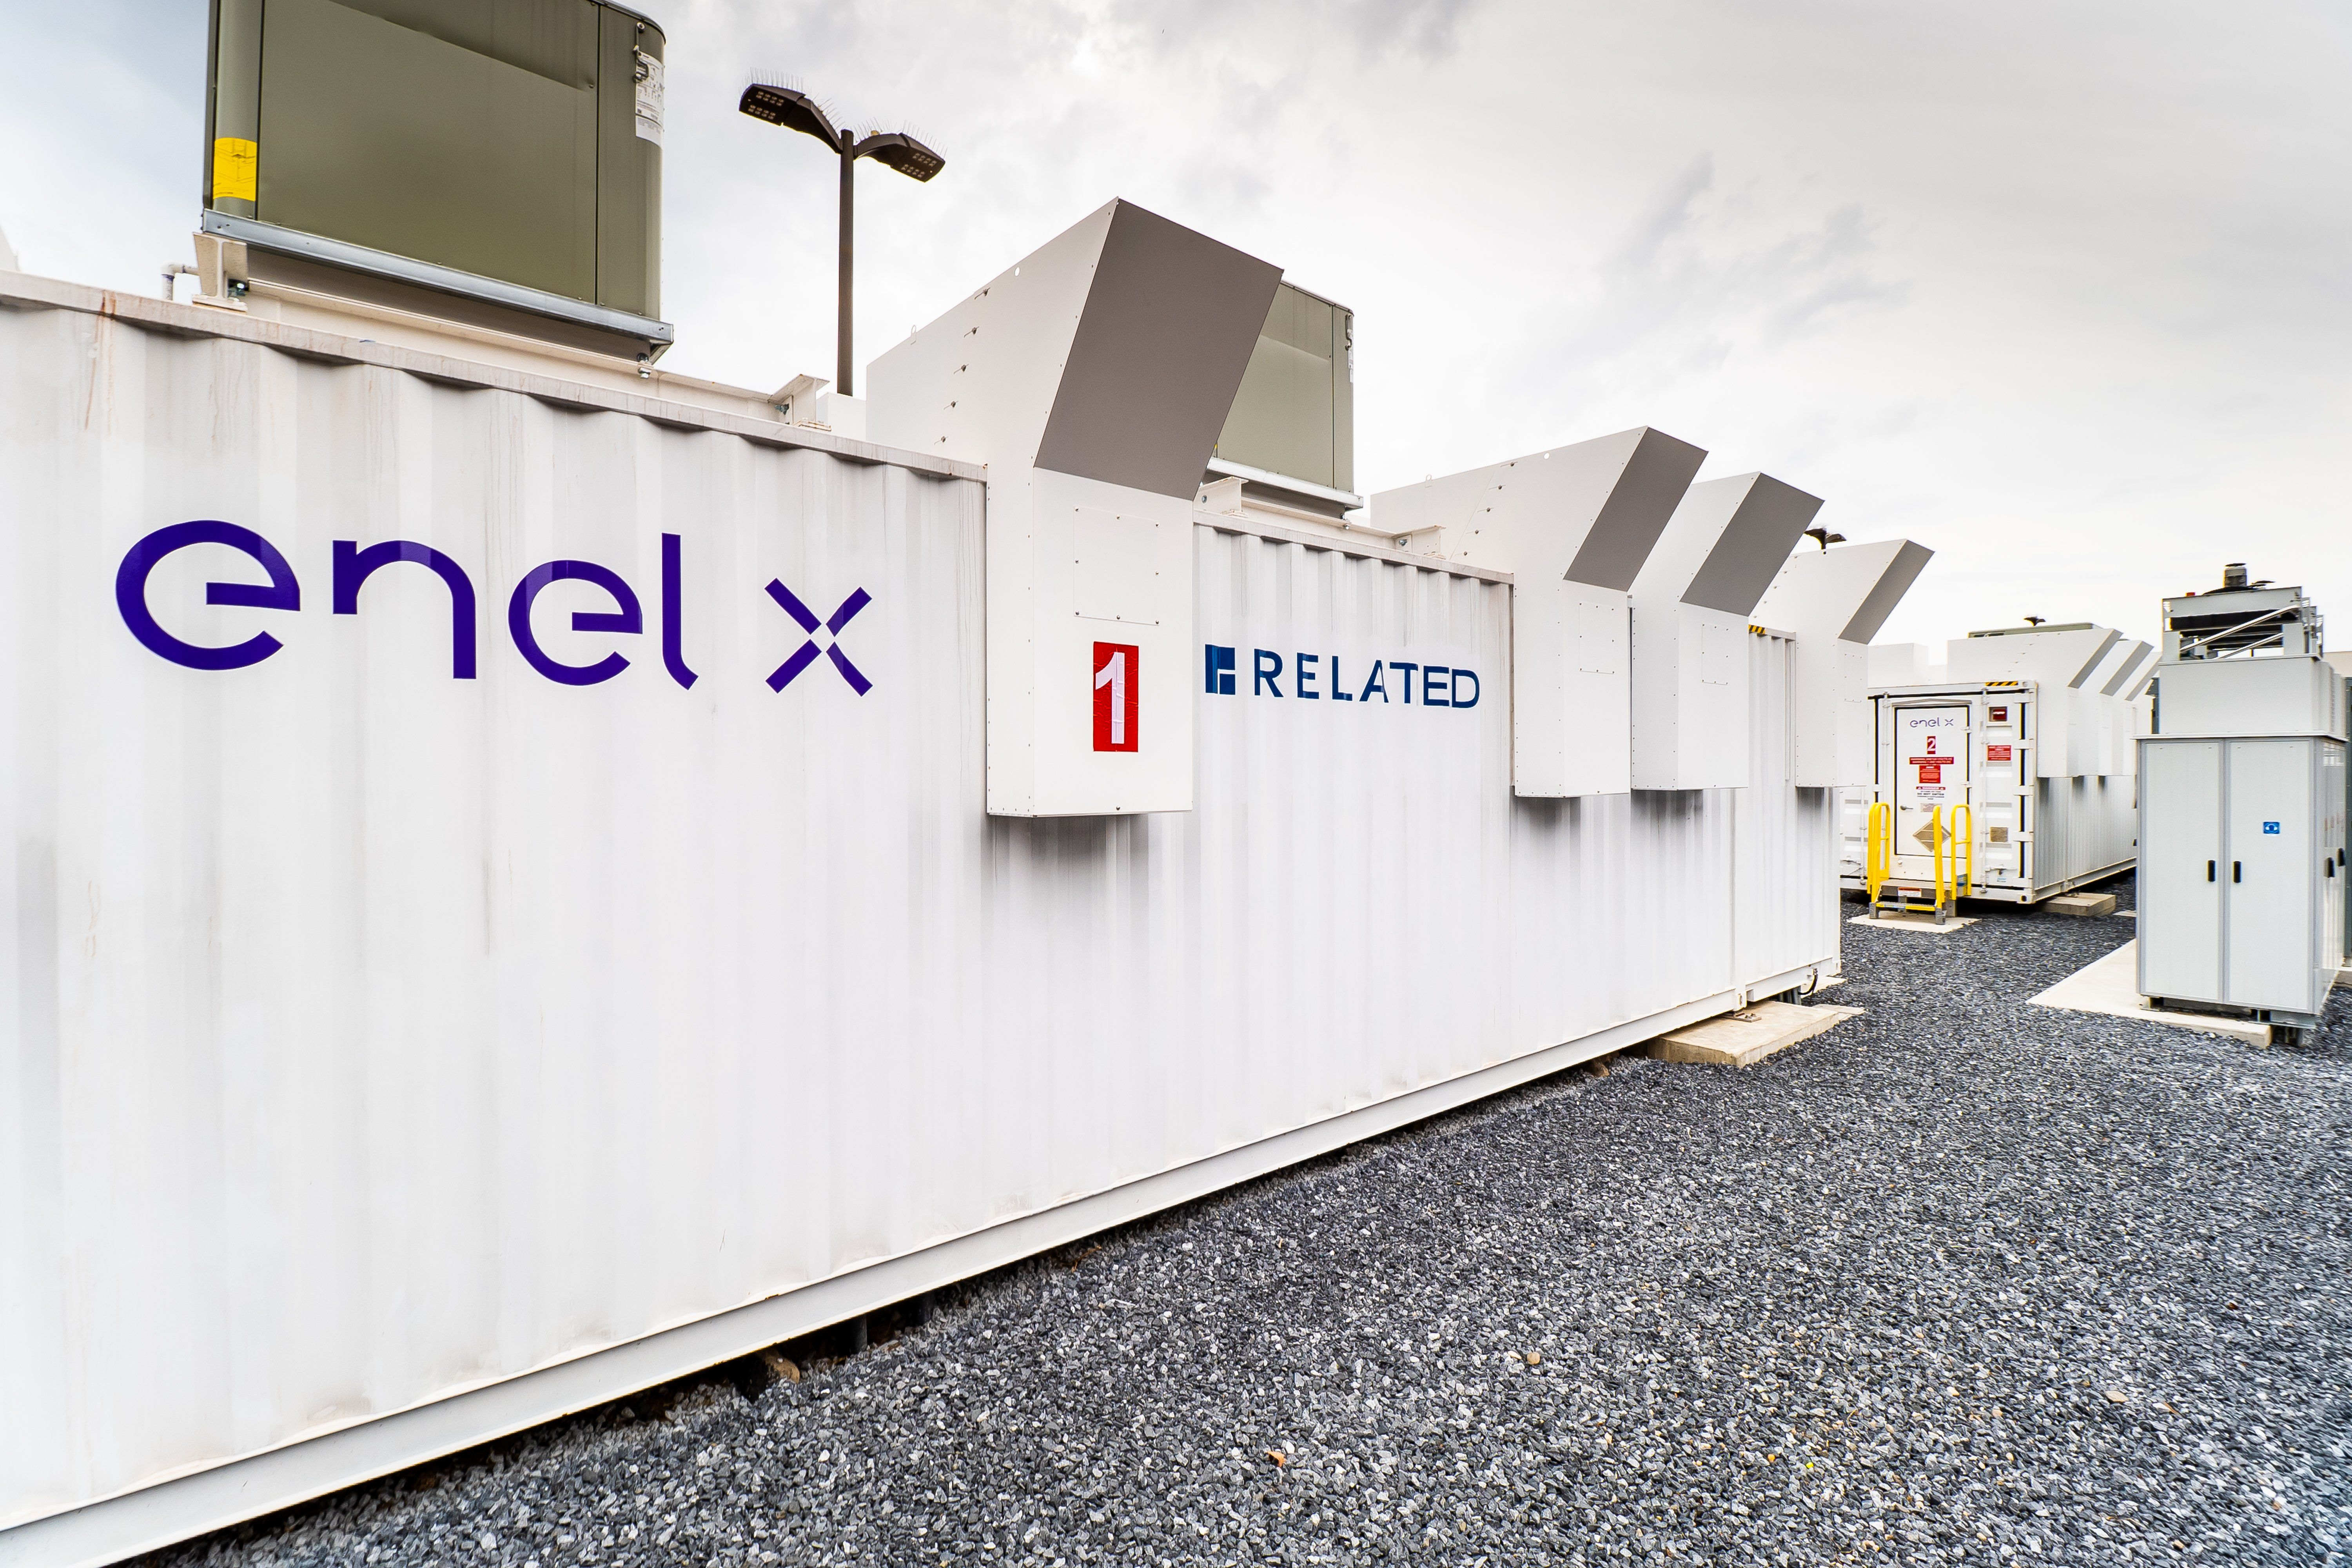 Enel's new battery sits at a shopping mall owned by Related Companies, but its activities serve Con Edison's grid. (Photo credit: Enel X)